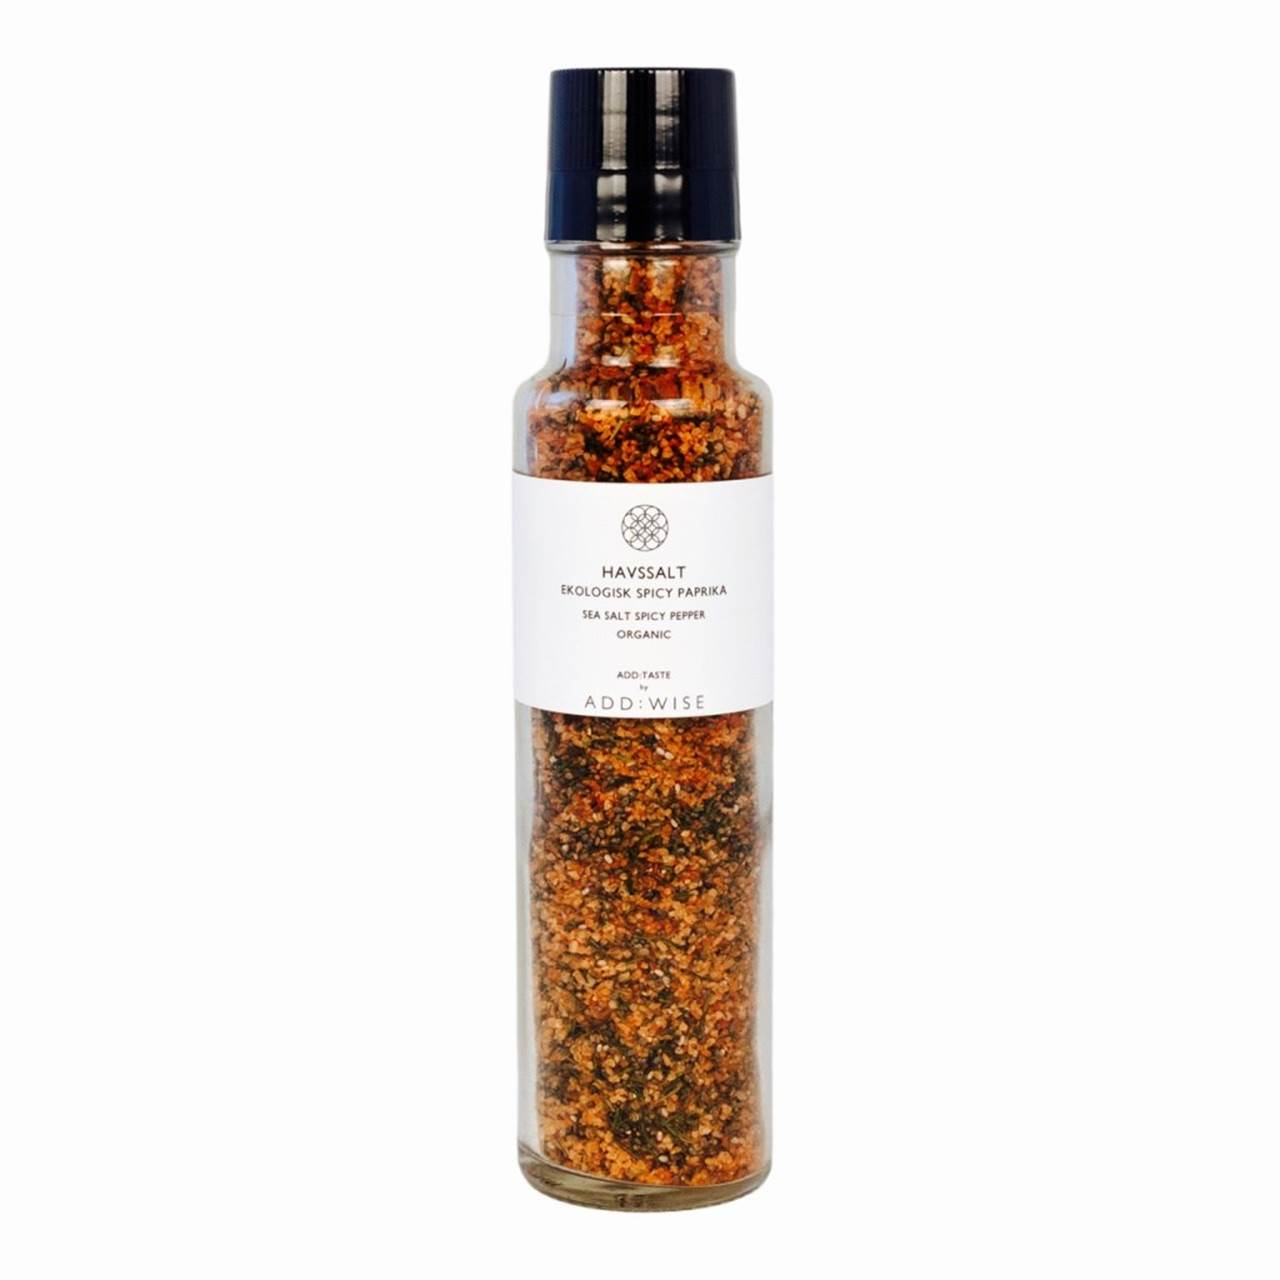 Krydderkvern Havsalt Spicy Paprika økologisk - ADD:WISE